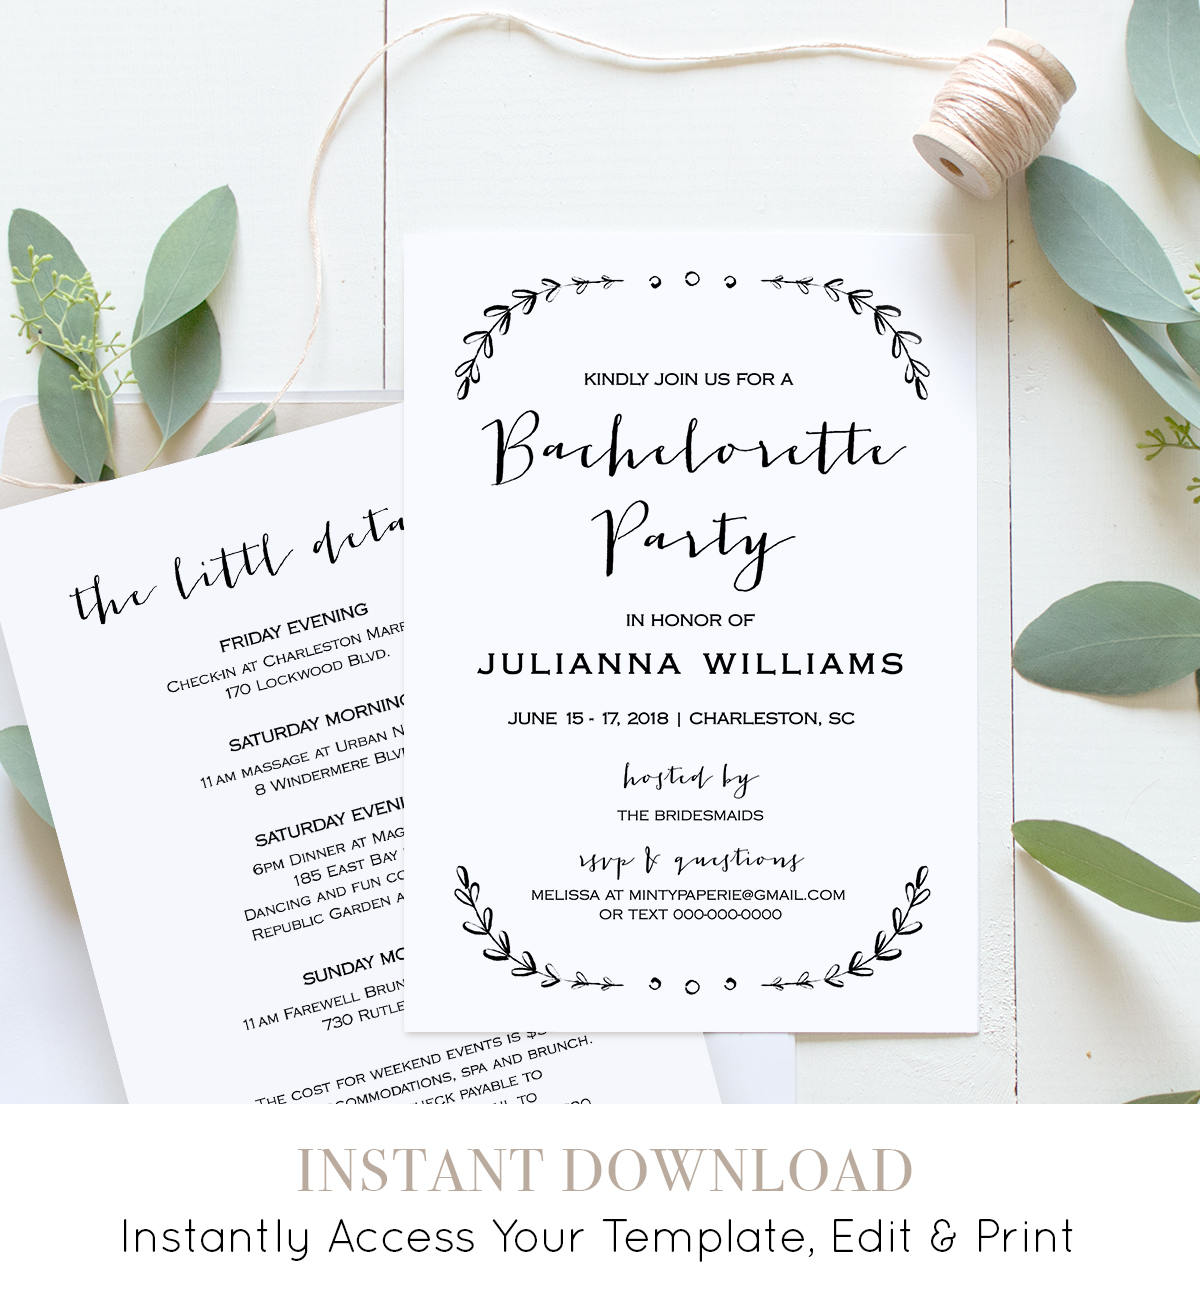 Bachelorette Party Invitation Template Printable Rustic - Party invitation template: bachelorette party itinerary template